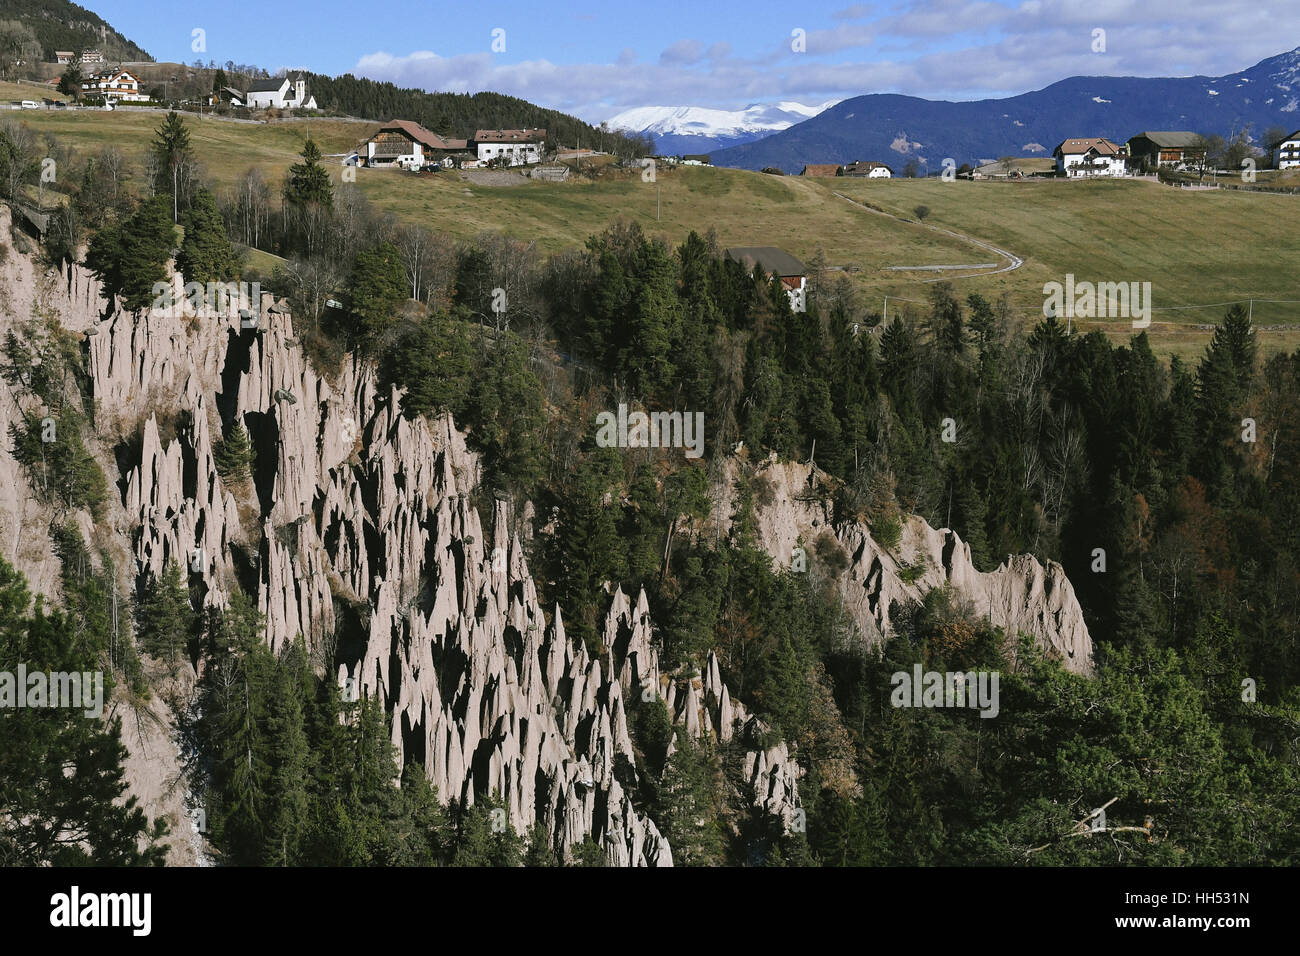 View to Ritten, South Tyrol, Italy, Earth Pyramids - Stock Image